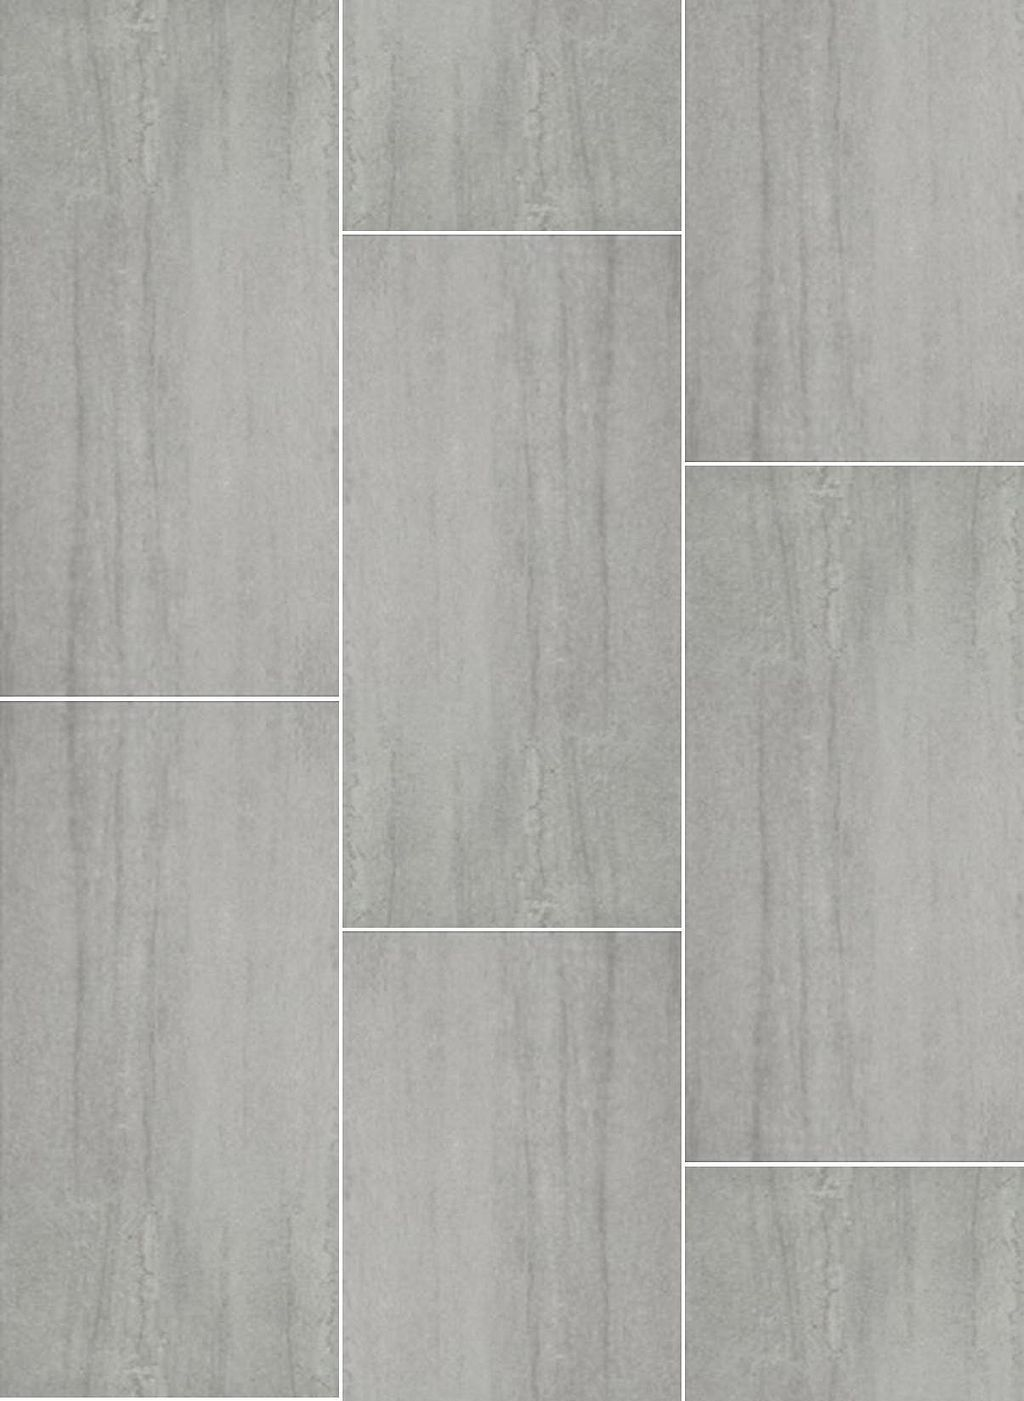 Awesome Wall And Floor Tile Texture Ideas In 2020 Grey Floor